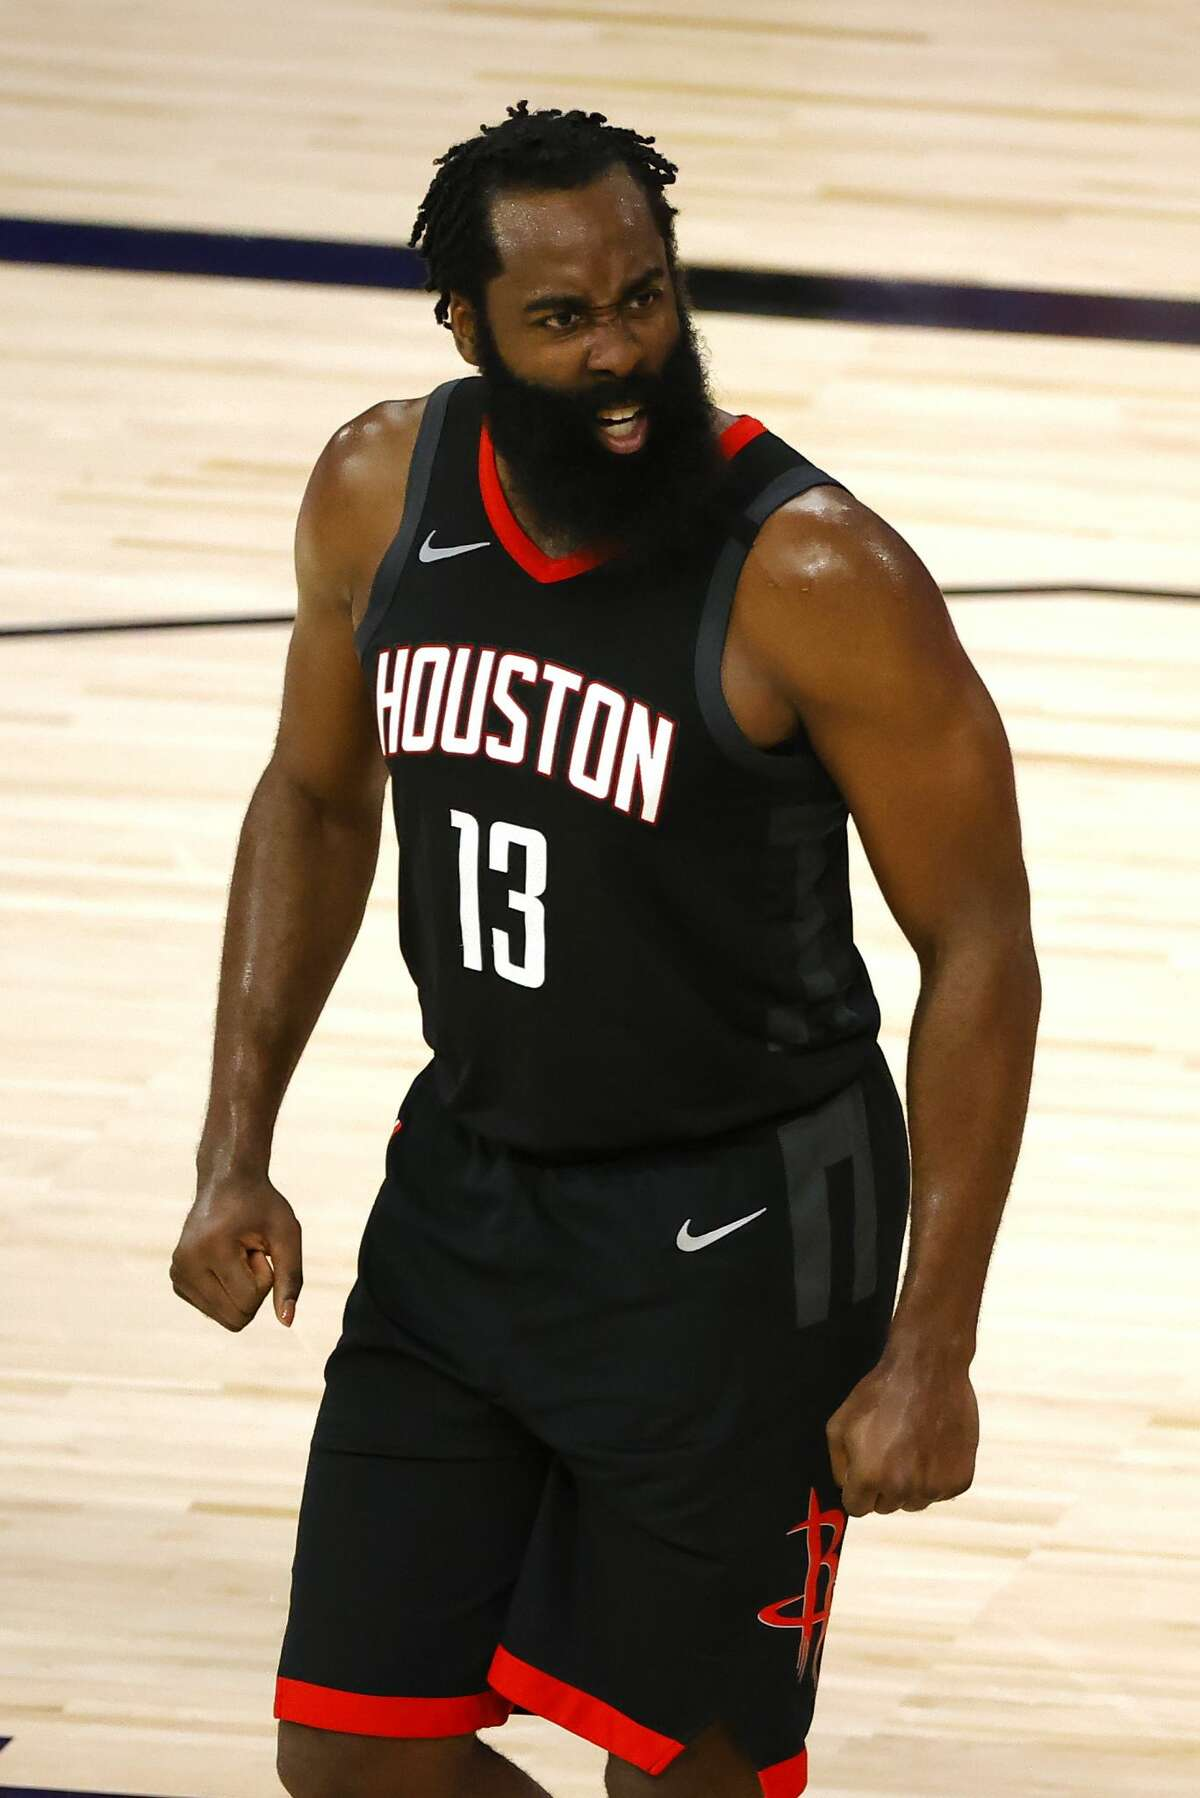 LAKE BUENA VISTA, FLORIDA - AUGUST 29: James Harden #13 of the Houston Rockets reacts against the Oklahoma City Thunder during the third quarter in Game Five of the Western Conference First Round during the 2020 NBA Playoffs at the Field House at ESPN Wide World Of Sports Complex on August 29, 2020 in Lake Buena Vista, Florida. NOTE TO USER: User expressly acknowledges and agrees that, by downloading and or using this photograph, User is consenting to the terms and conditions of the Getty Images License Agreement. (Photo by Kevin C. Cox/Getty Images)